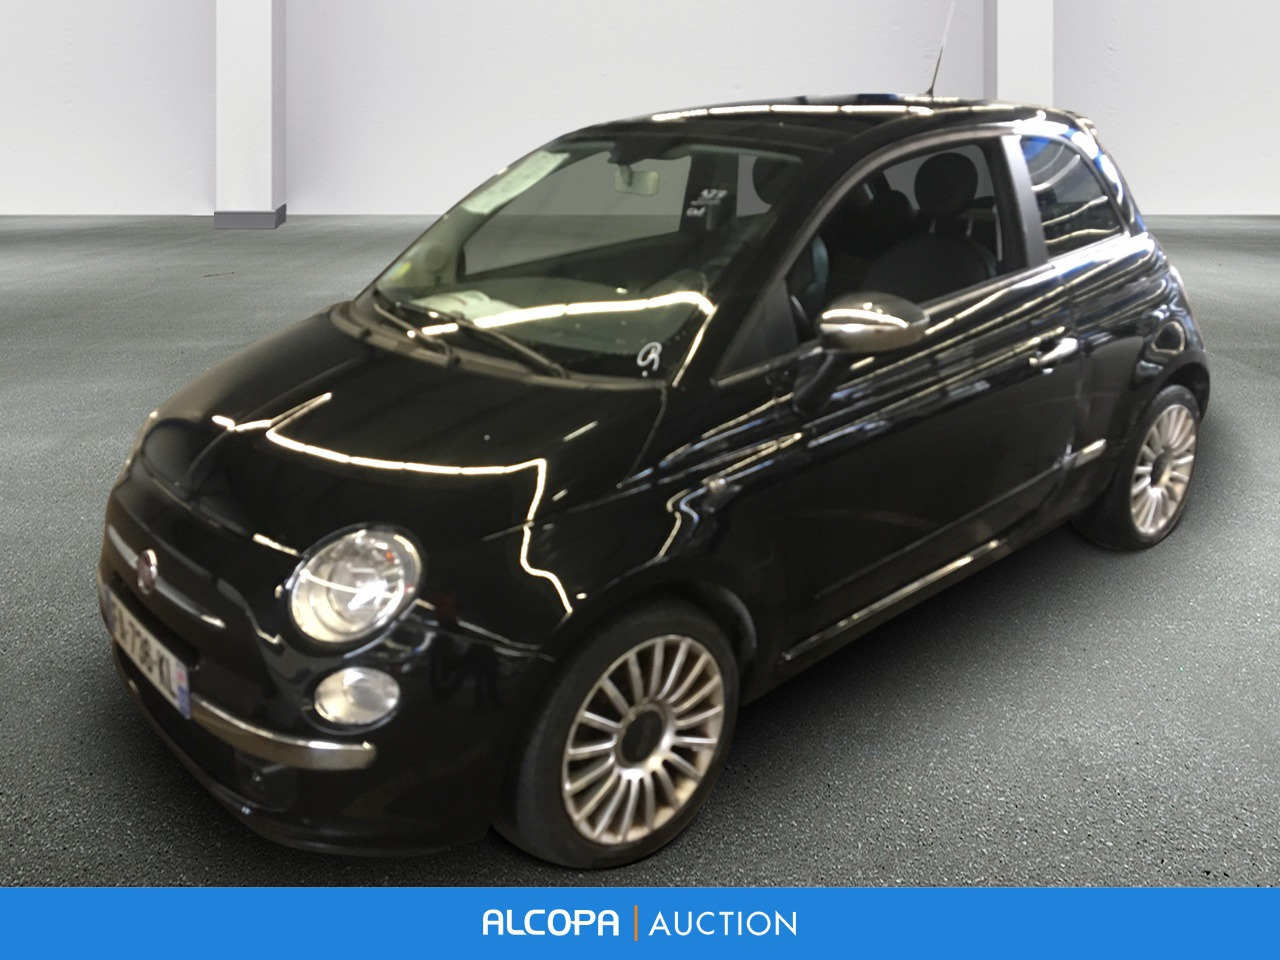 fiat 500 500 1 2 8v 69 ch sport alcopa auction. Black Bedroom Furniture Sets. Home Design Ideas